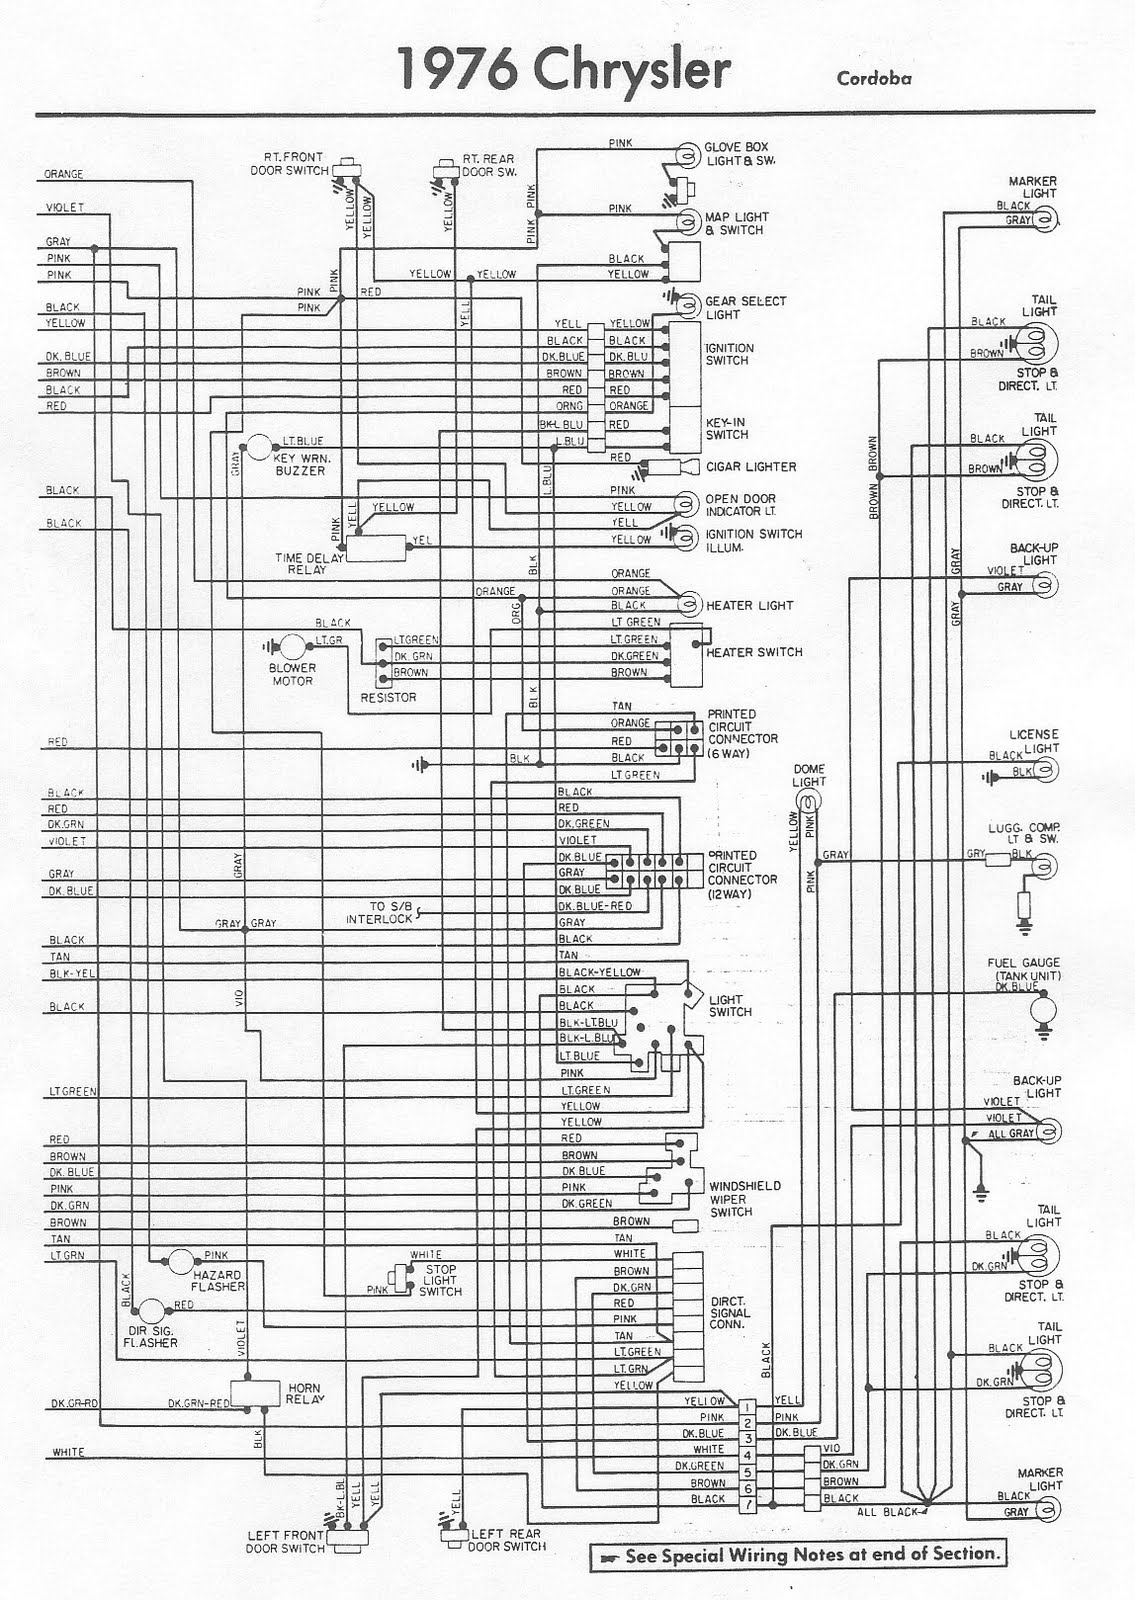 2002 chrysler sebring radio wiring diagram nissan xterra stereo free diagrams transmission, free, engine image for user manual download